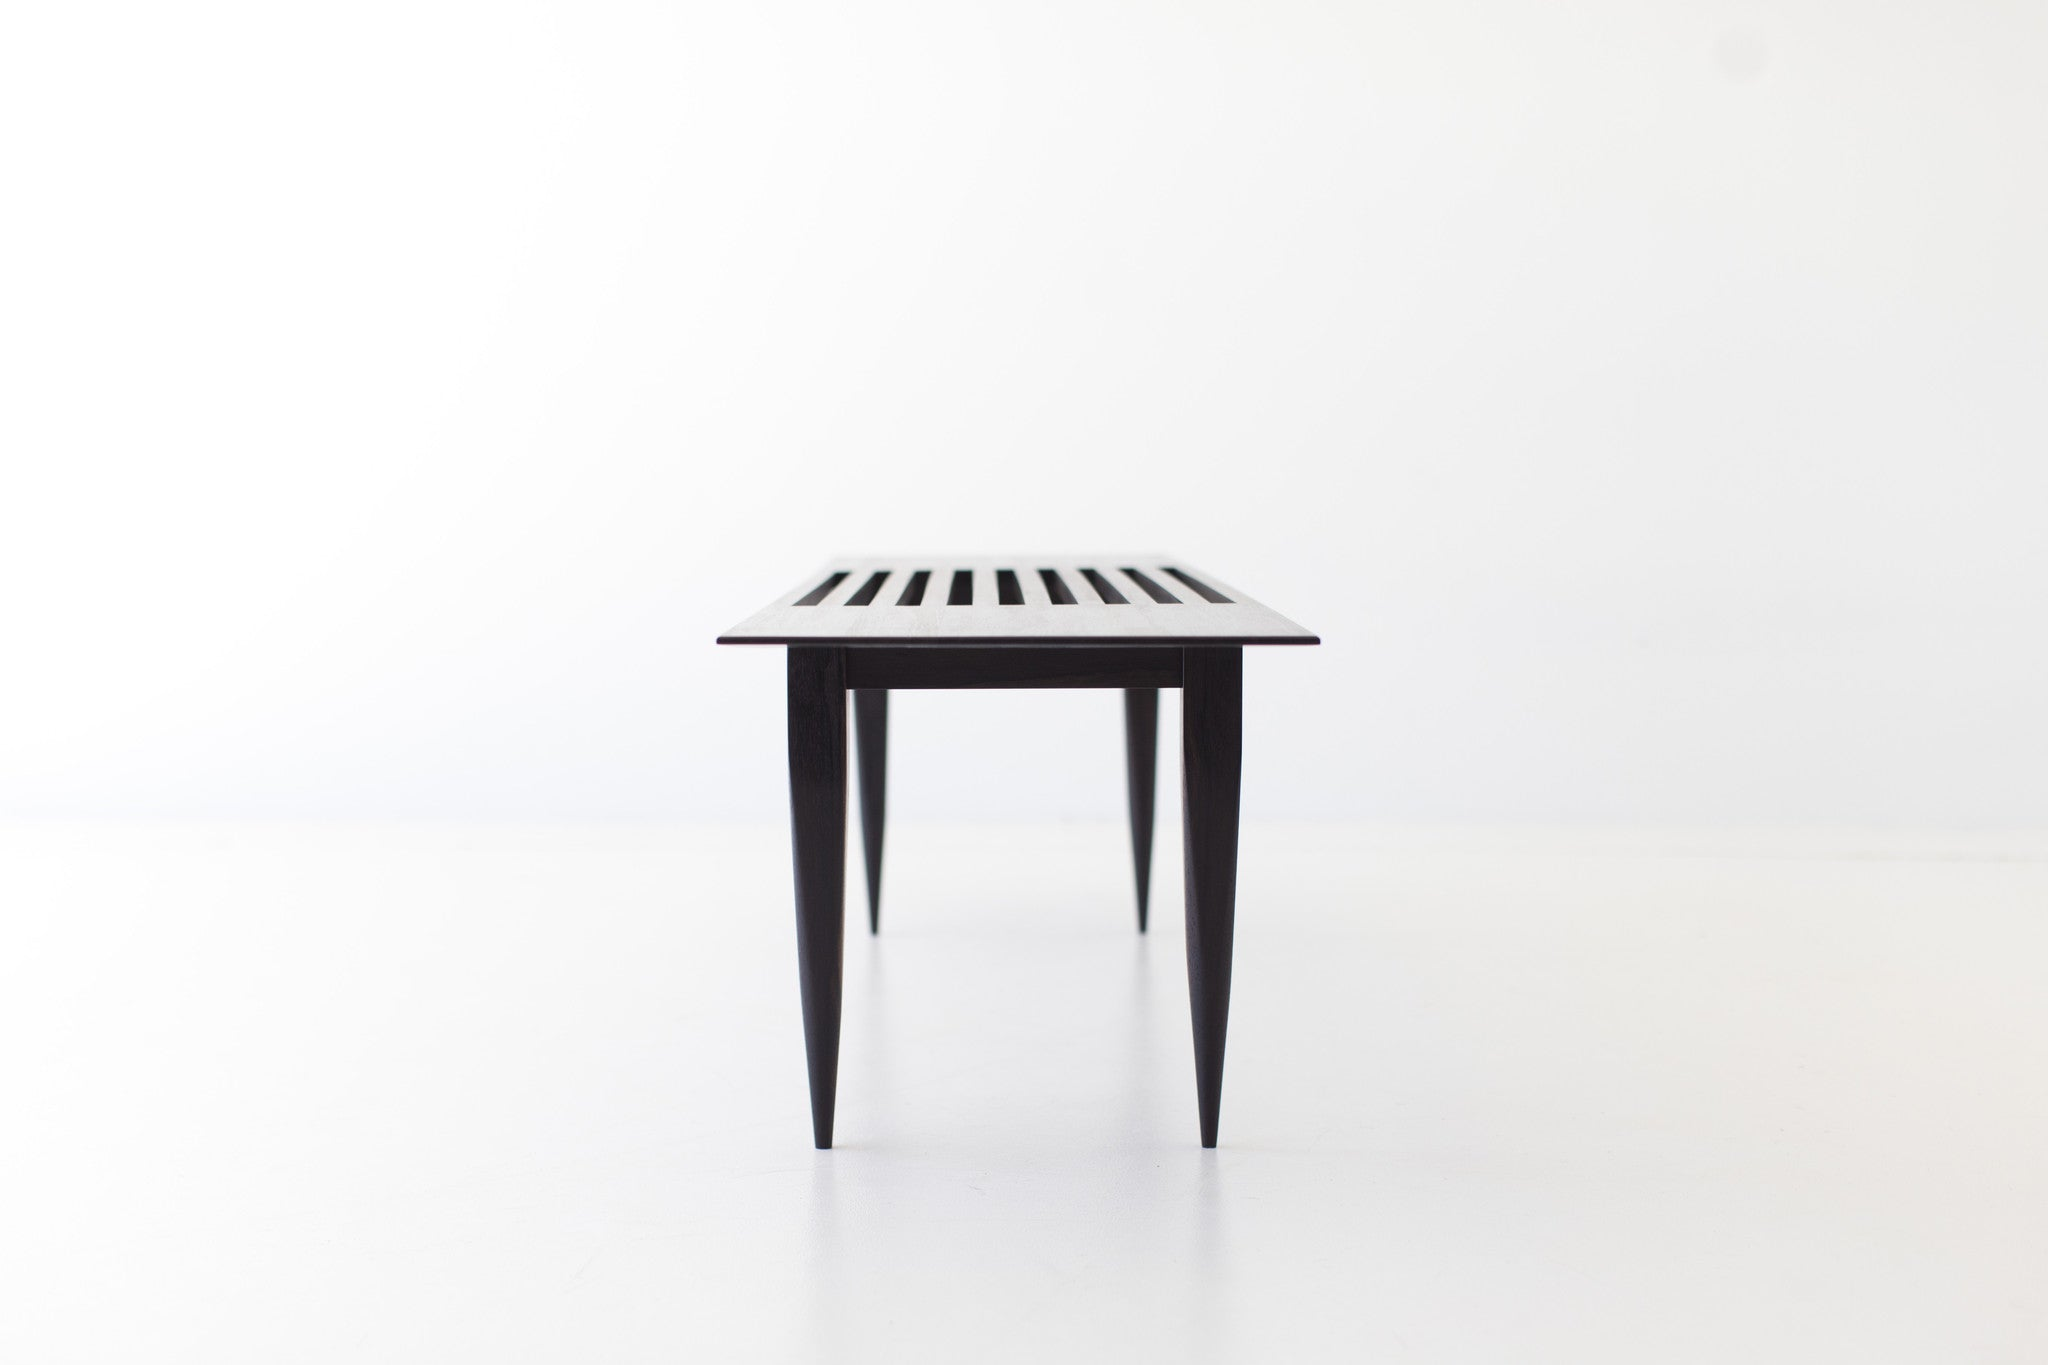 modern-slatted-bench-1602-j-bench-craft-associates-furniture-06